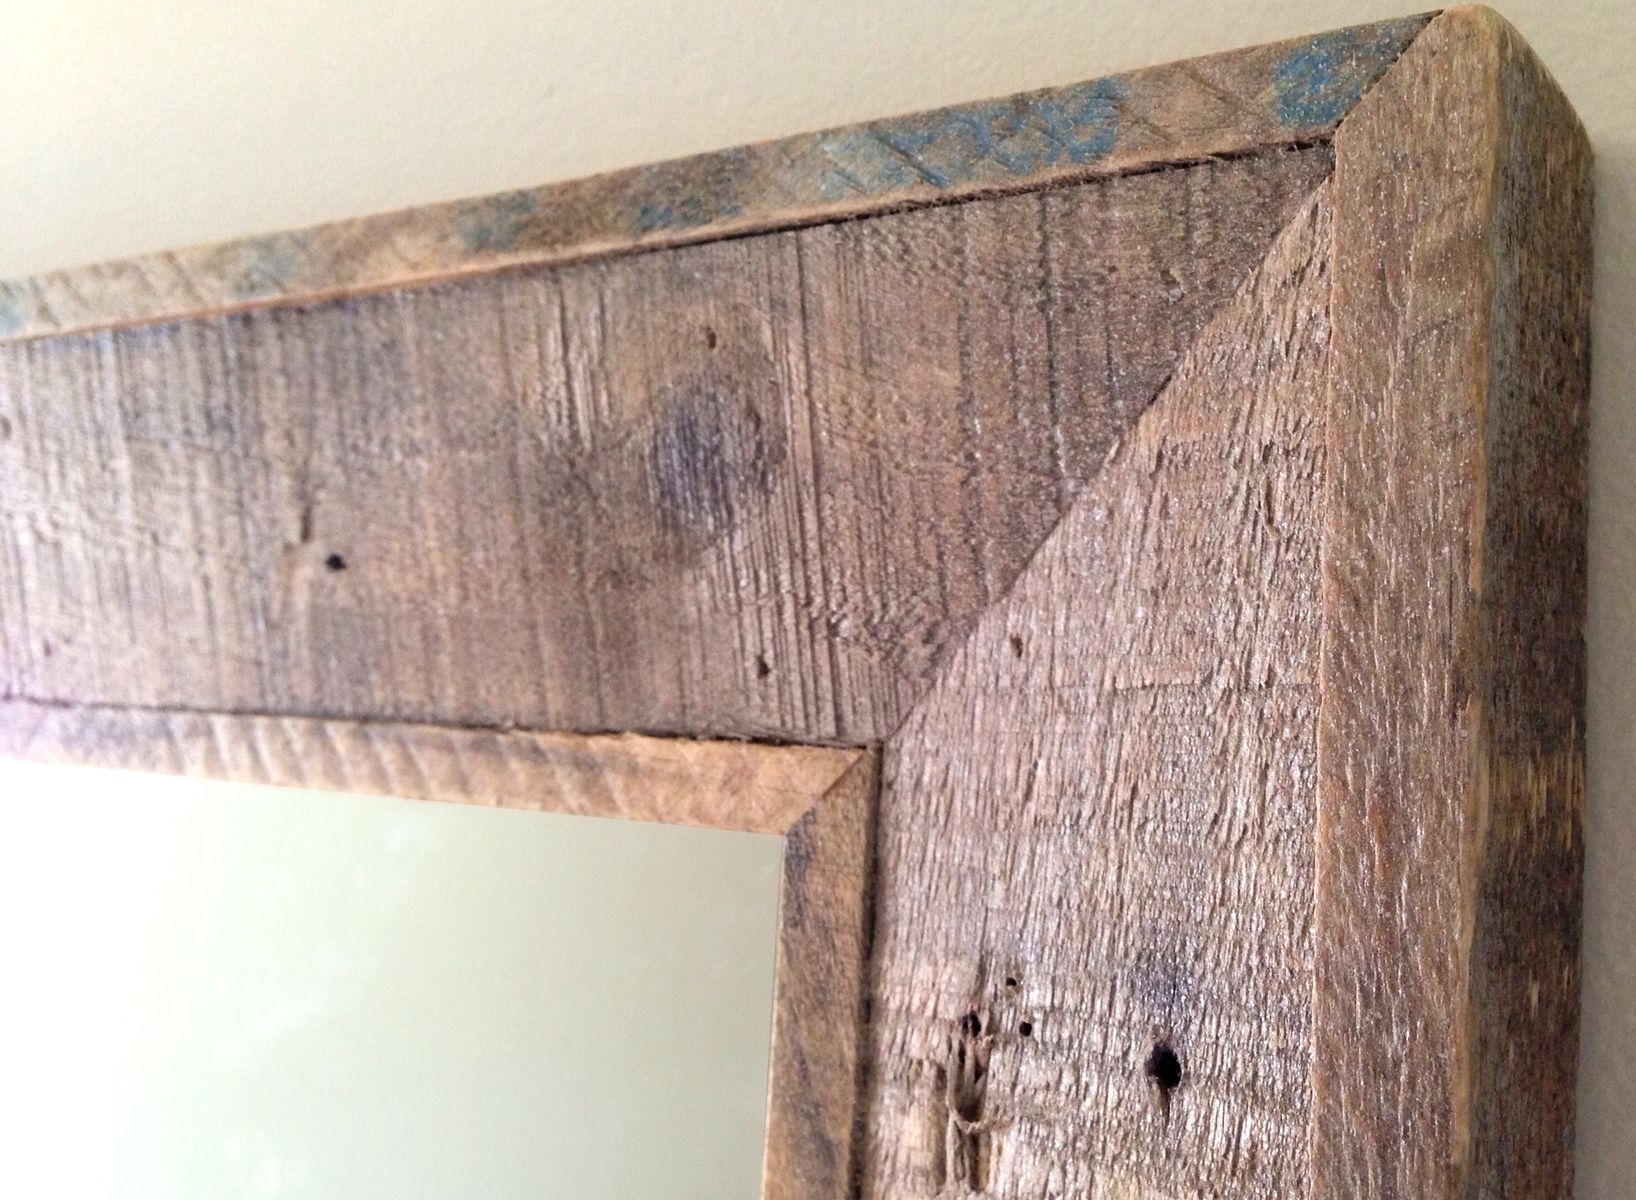 Hand Crafted Reclaimed Wood Mirror by Pulp & Ore